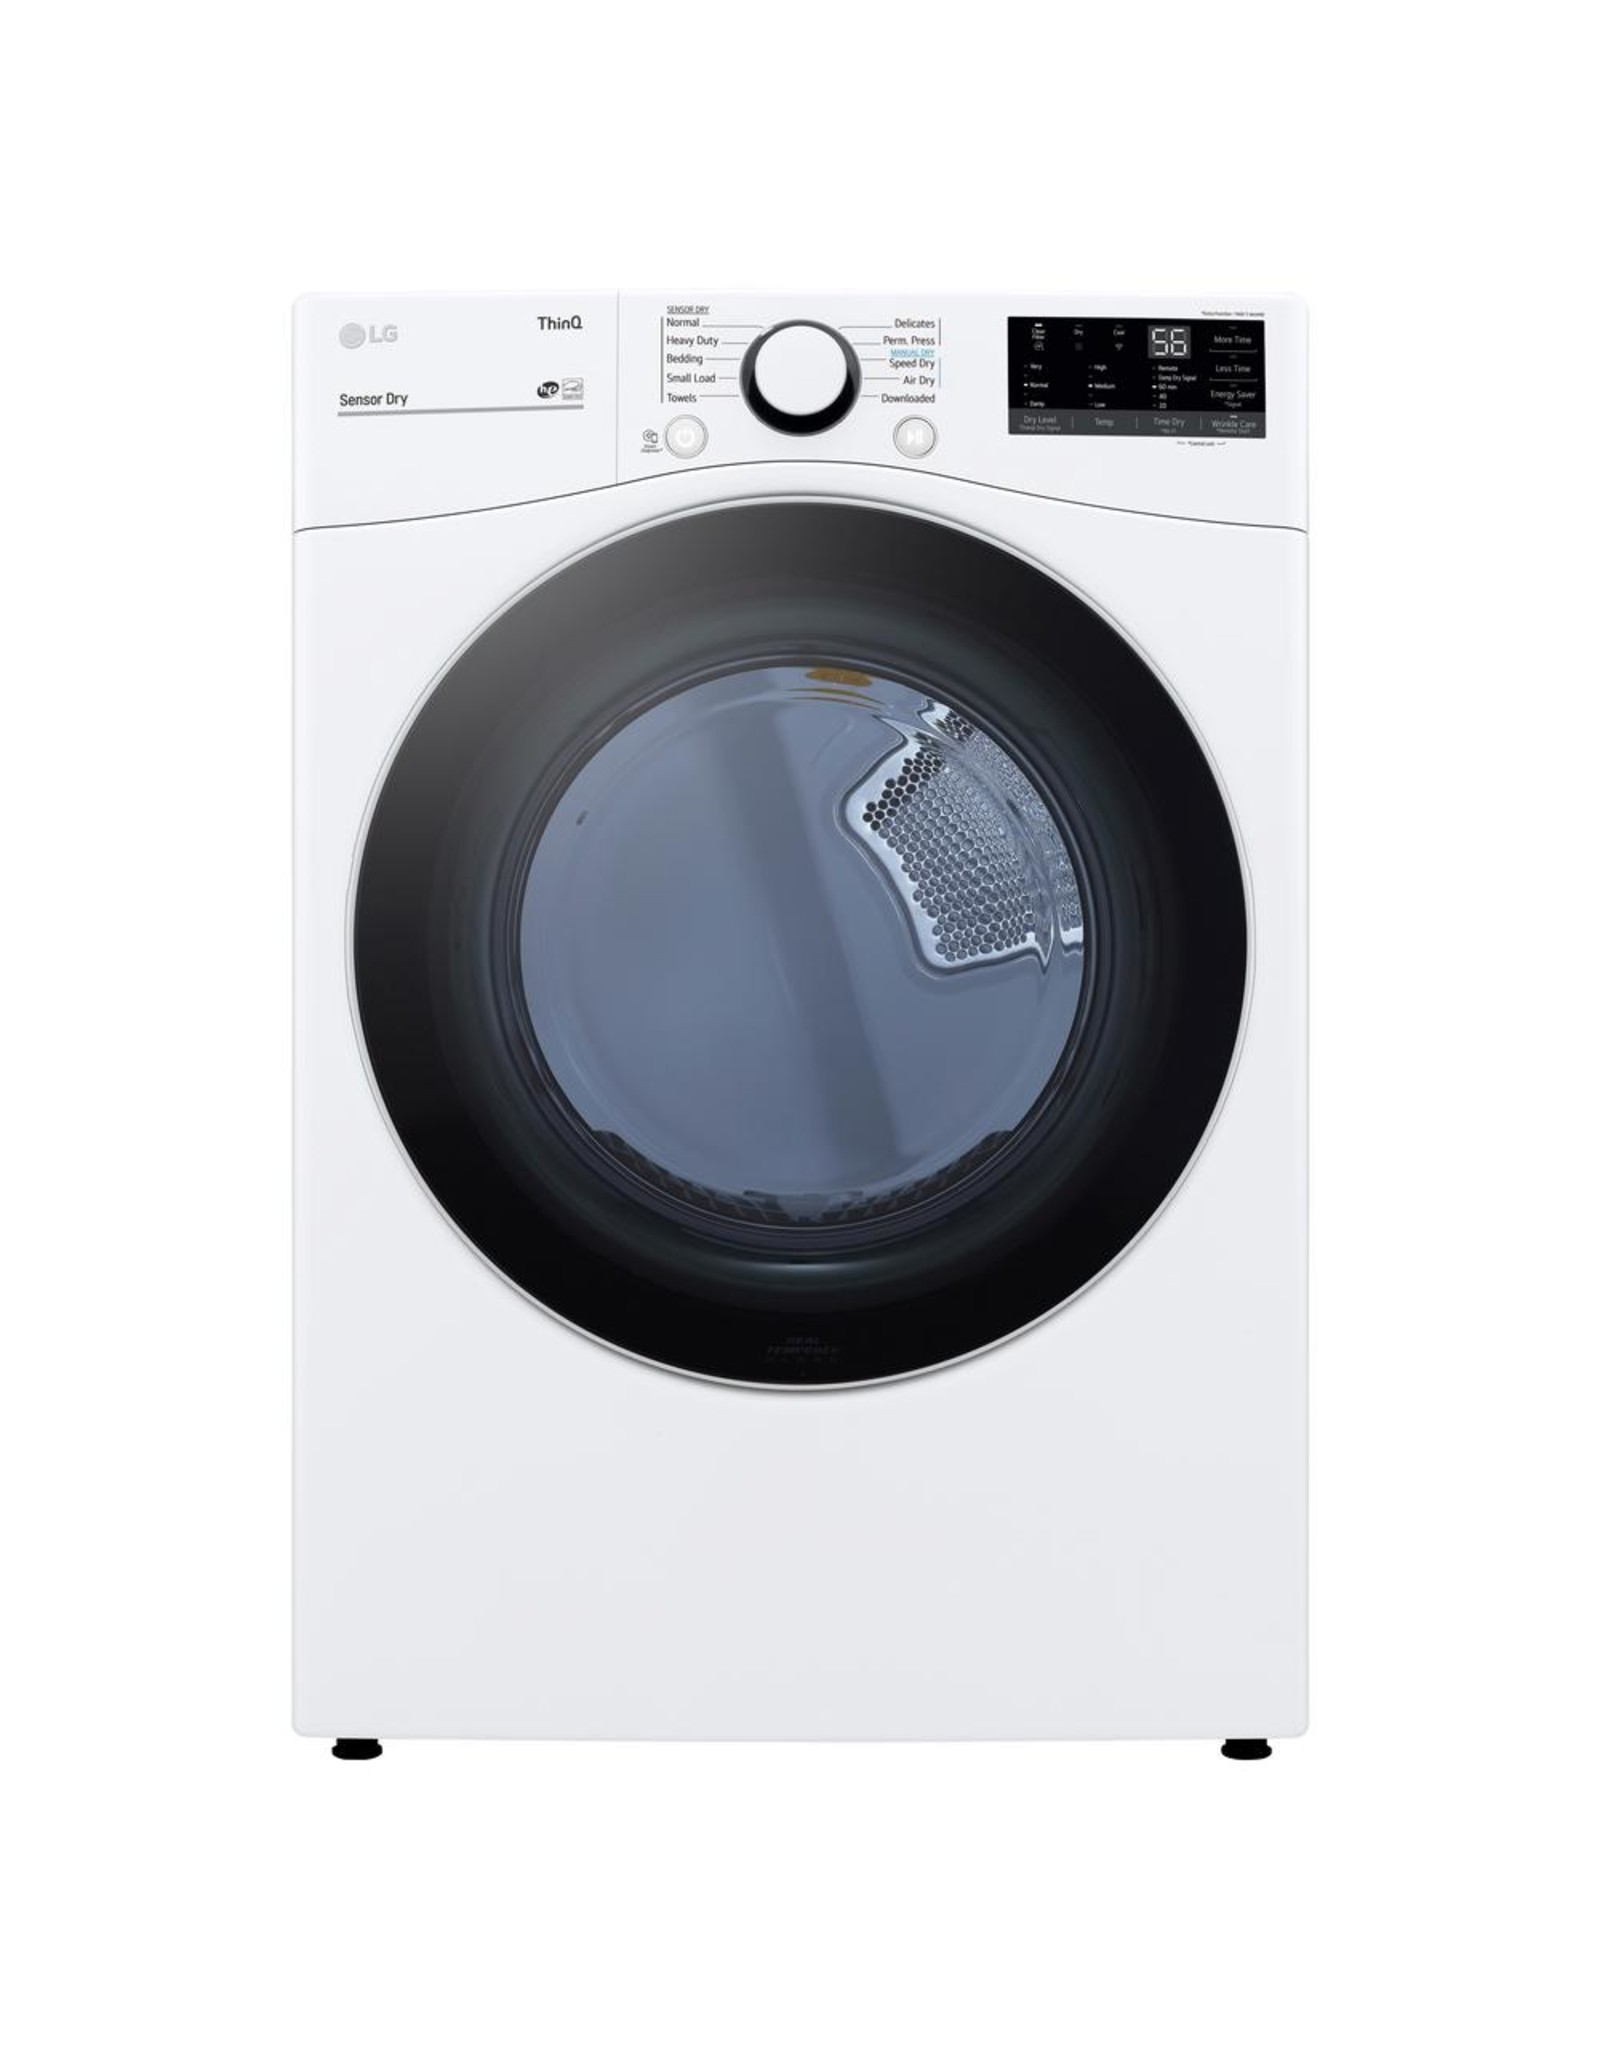 LG Electronics DLE3600W 7.4 cu. ft. White Ultra Large Capacity Electric Dryer with Sensor Dry